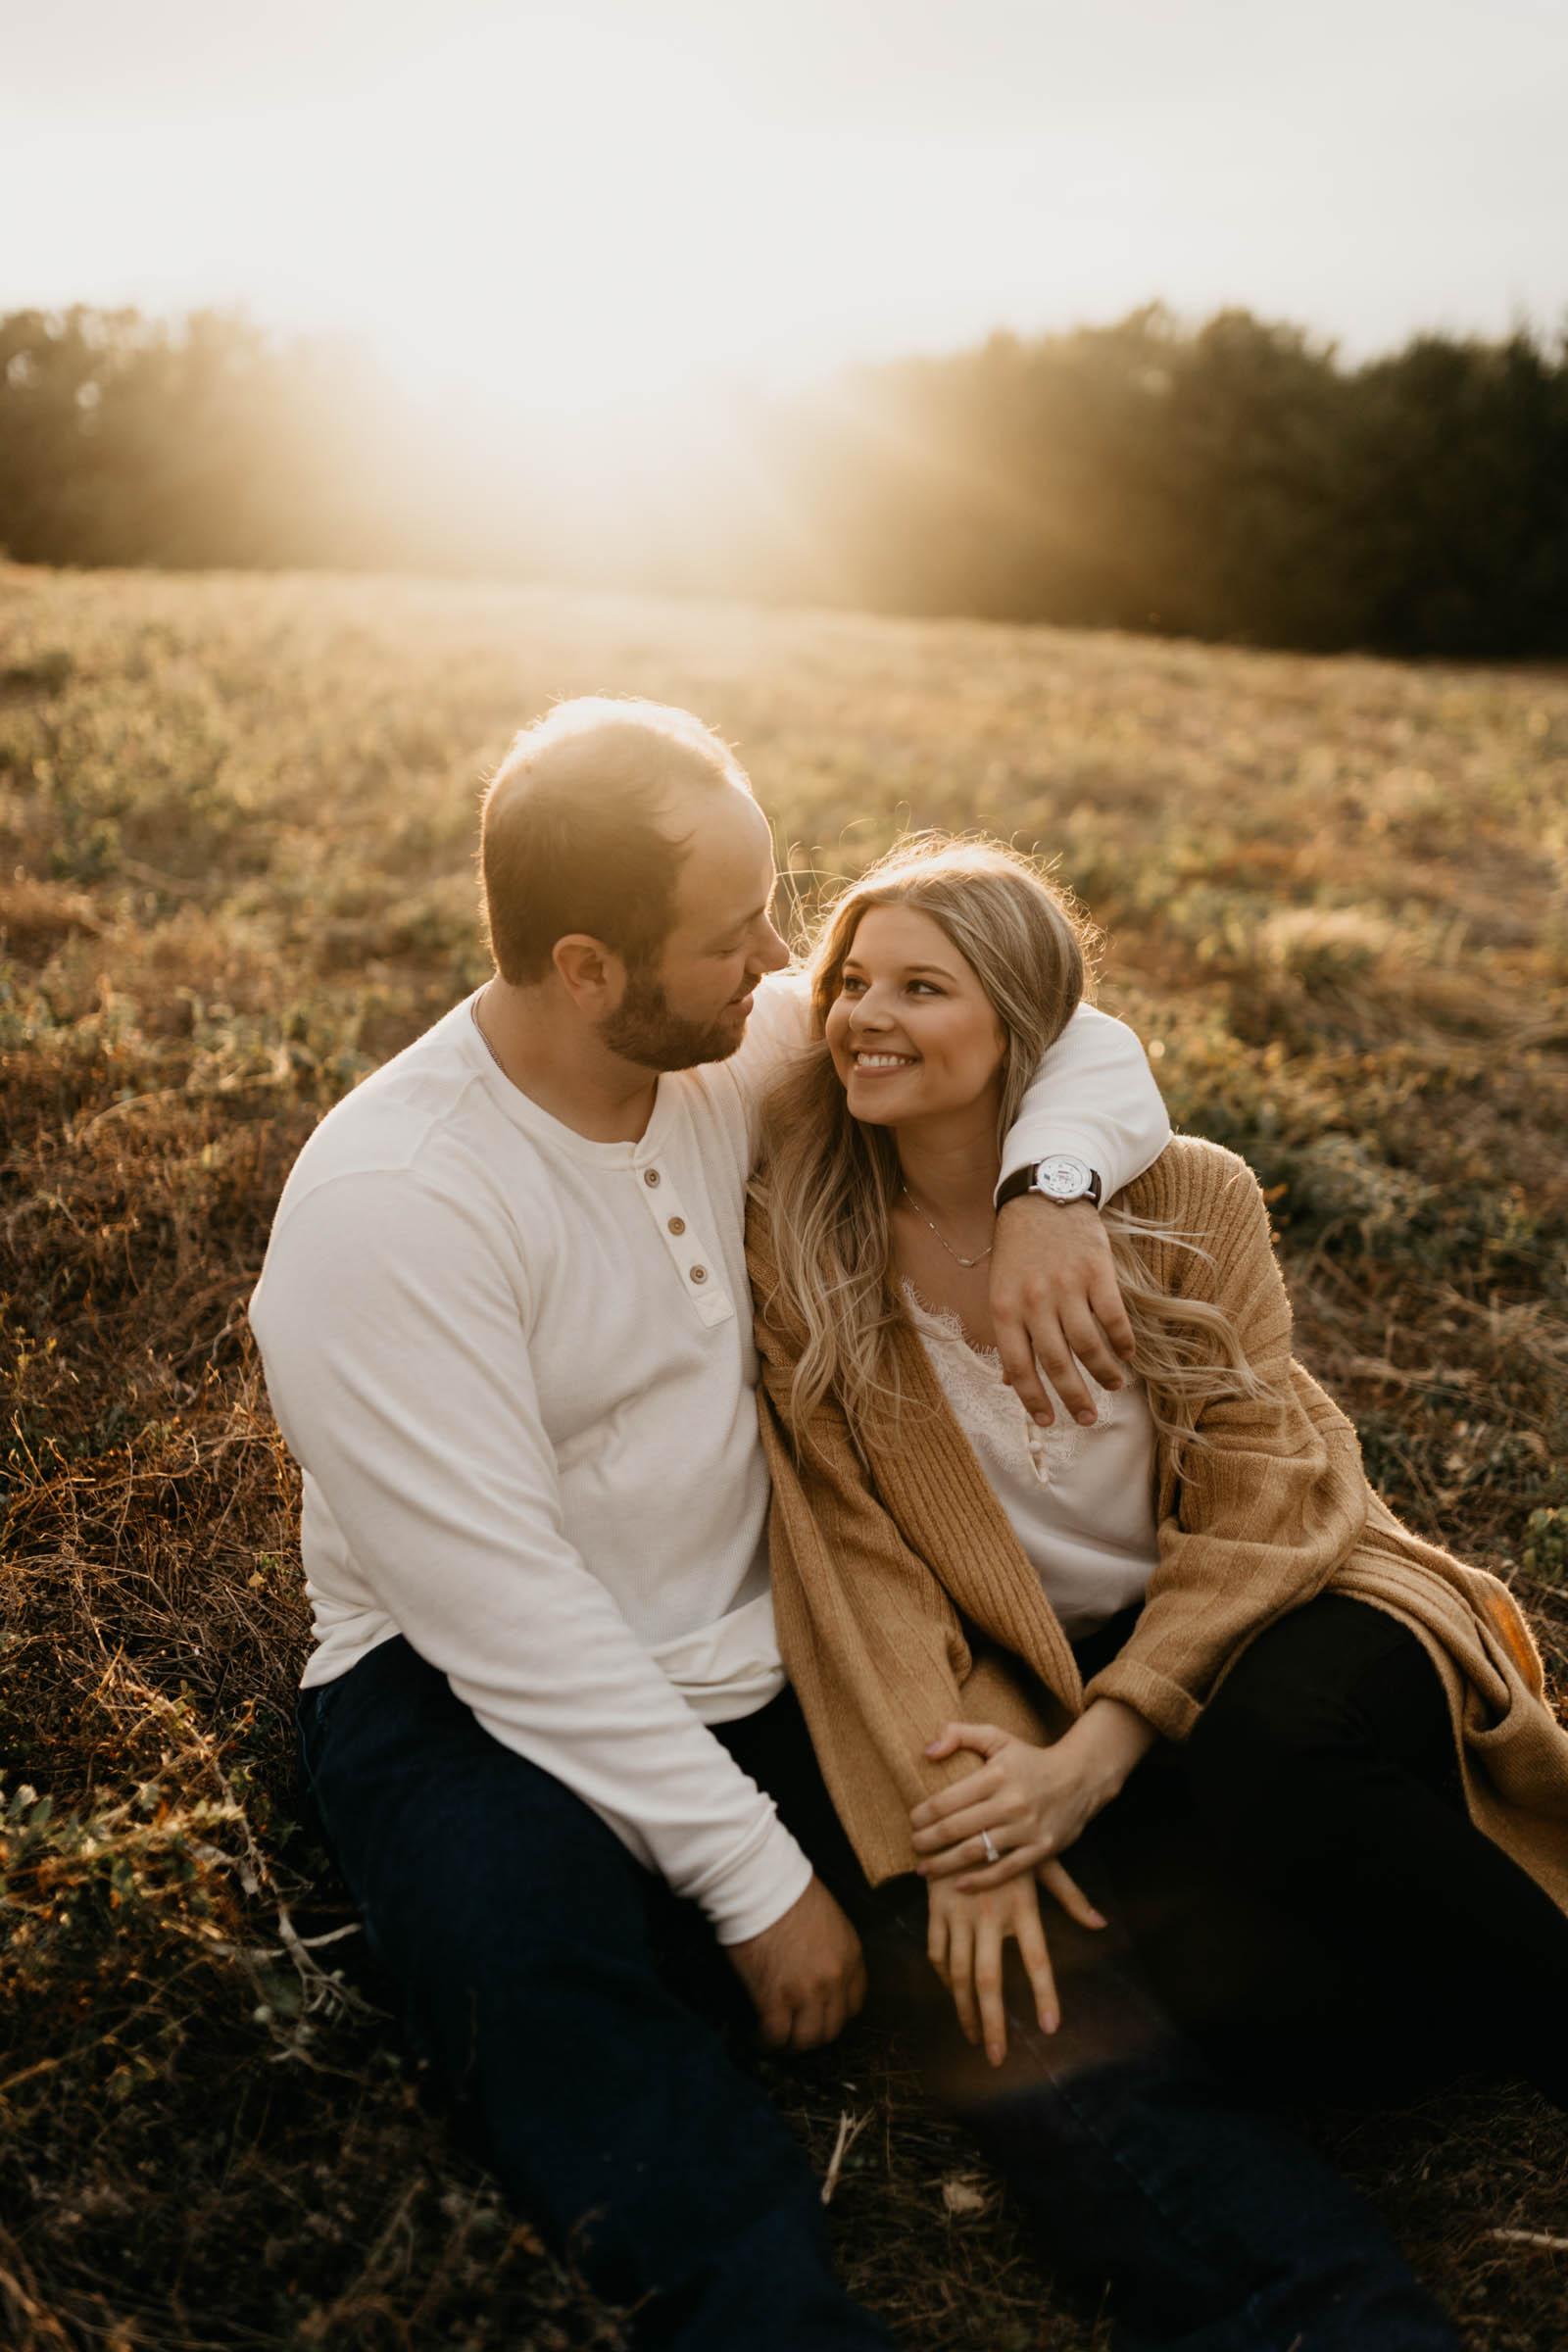 Golden hour engagement session with cuddly couple sitting and being romantic